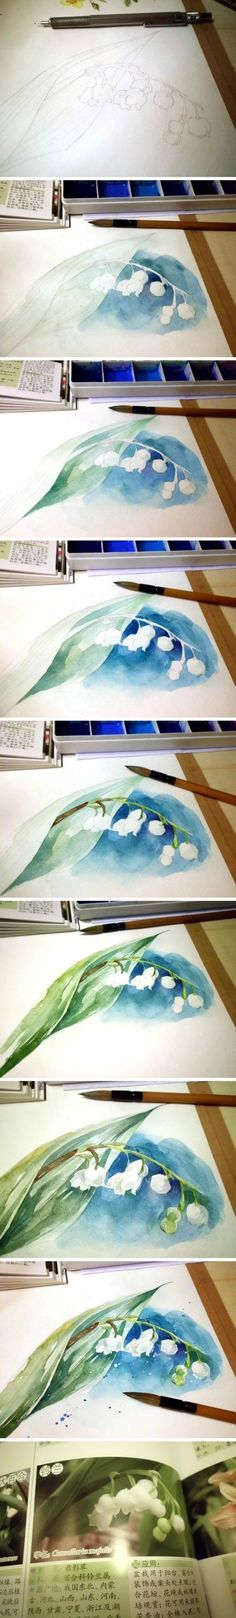 Watercolor step by step lily of the valley painting.